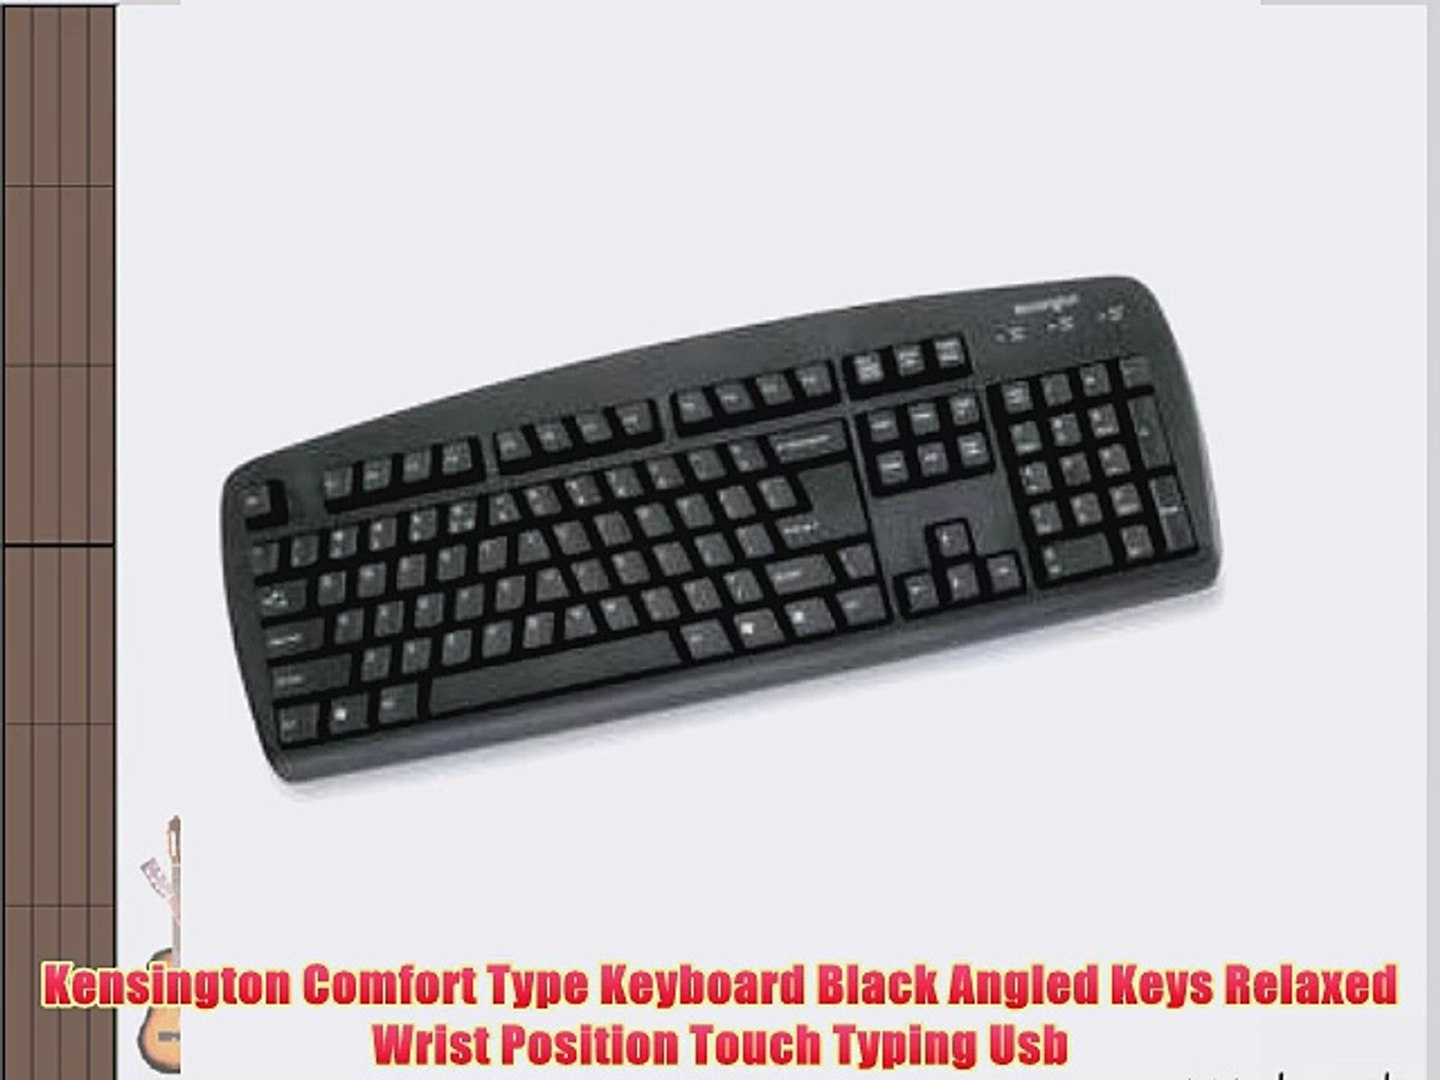 Kensington Comfort Type Keyboard Black Angled Keys Relaxed Wrist Position Touch Typing Usb